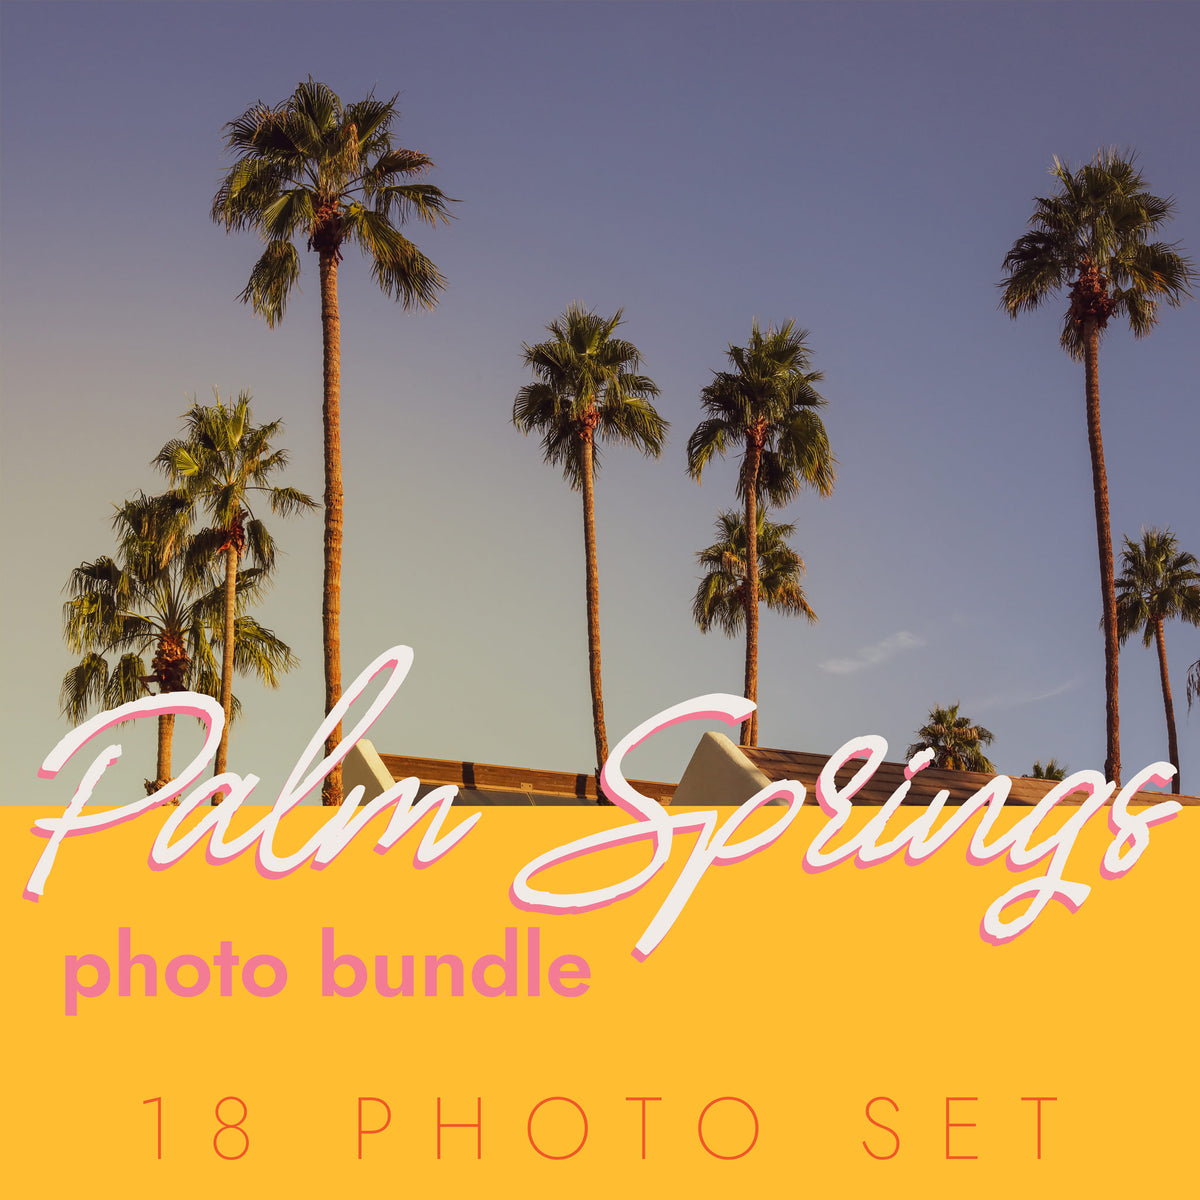 Palm Springs Photo Bundle